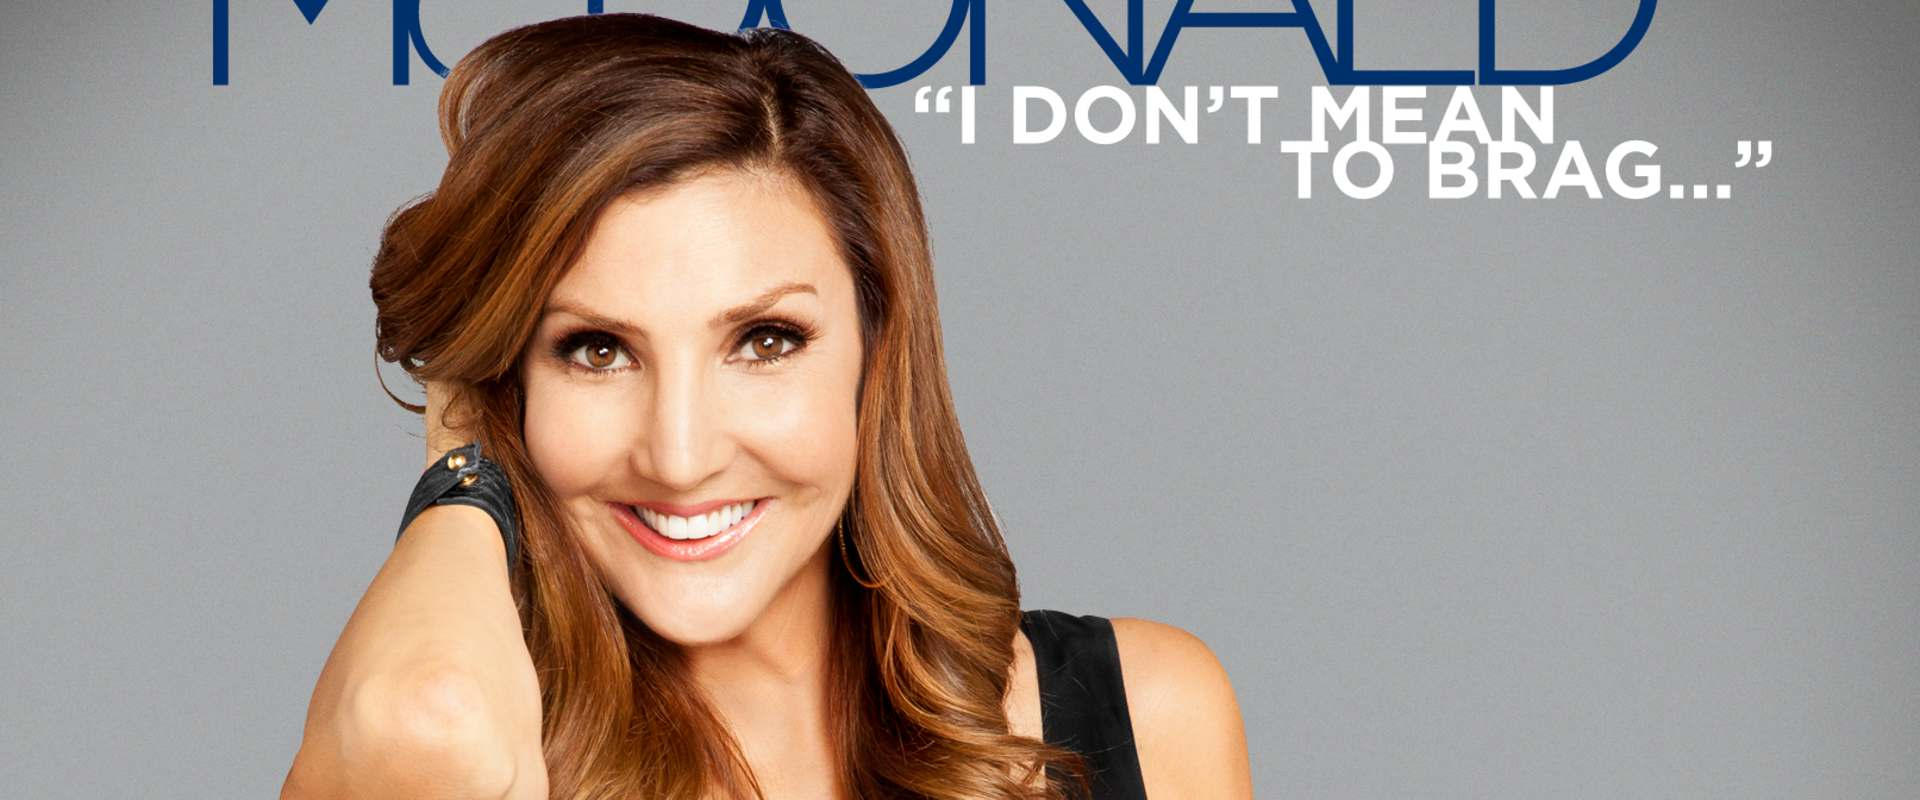 Heather McDonald: I Don't Mean to Brag background 1